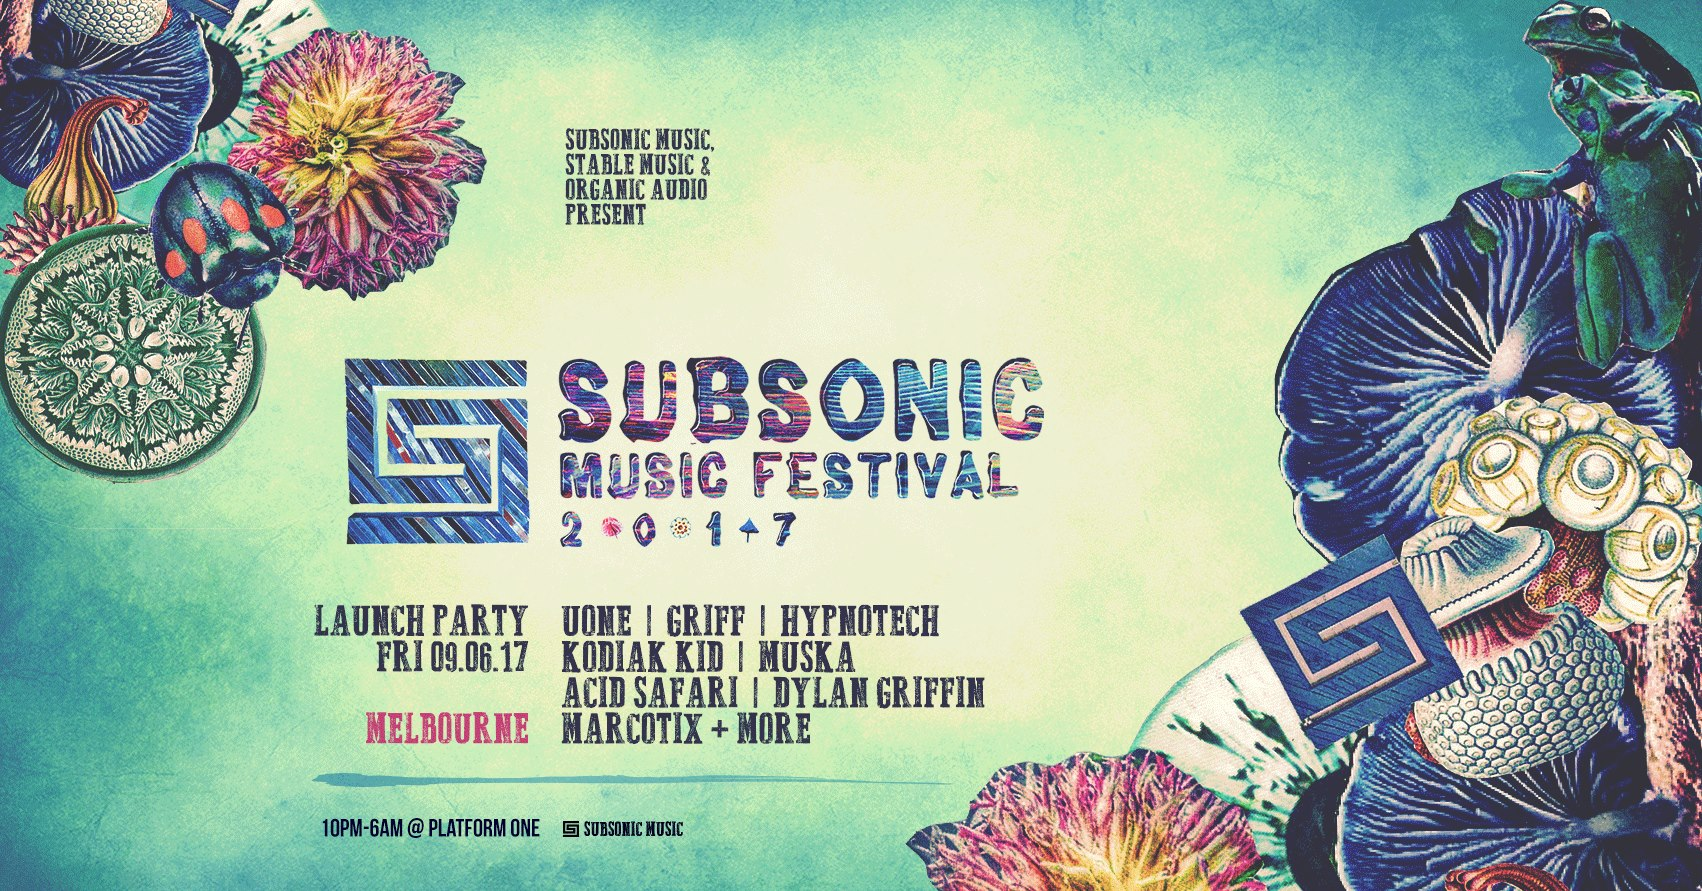 Subsonic Music Festival Launch Party: Fri: 9th June @PlatformOne